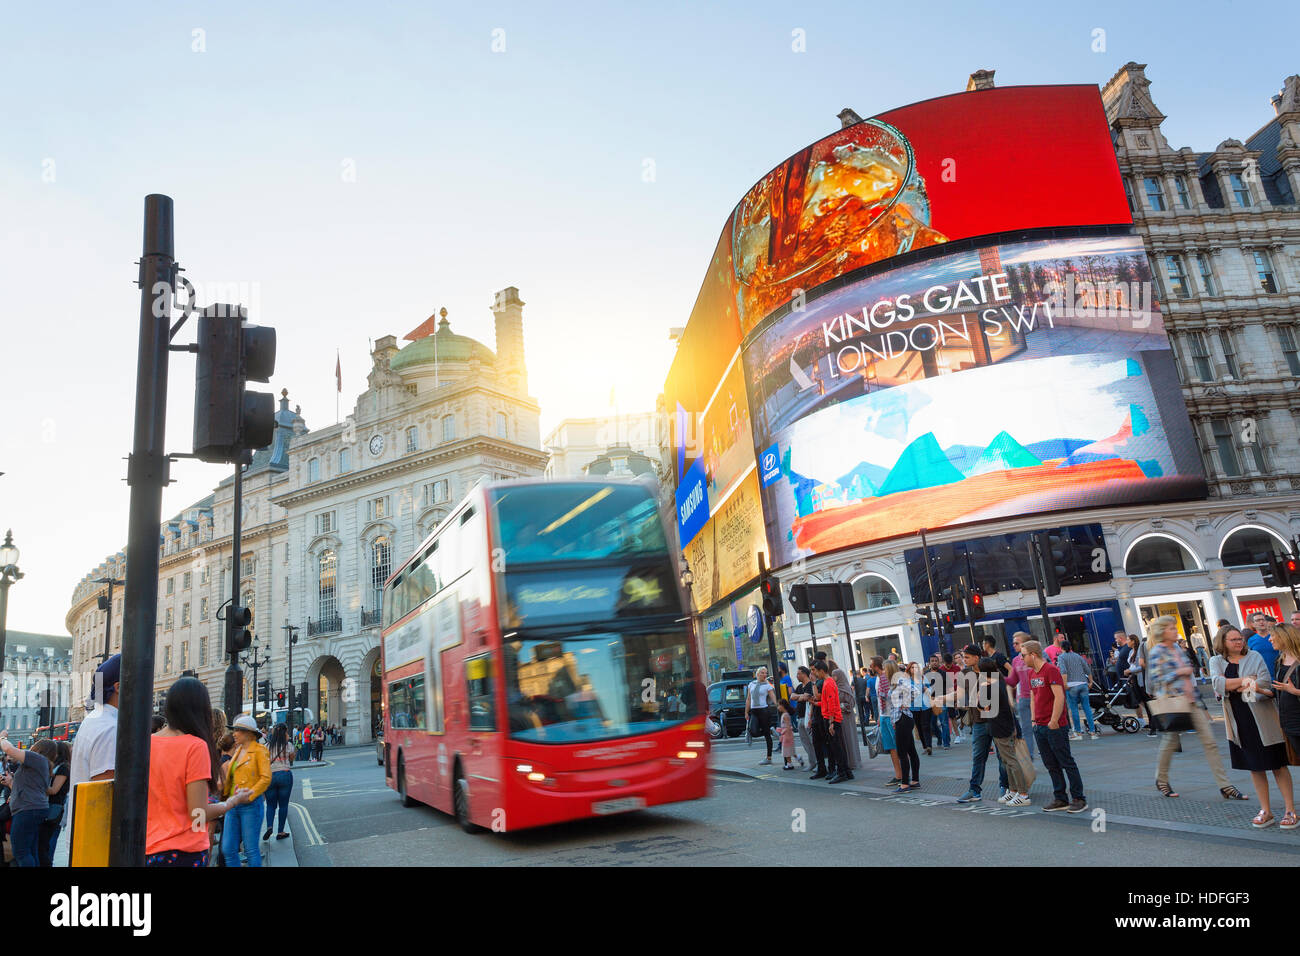 LONDON - Piccadilly Circus junction crowded by people in London, UK. It's a road junction and public space of - Stock Image